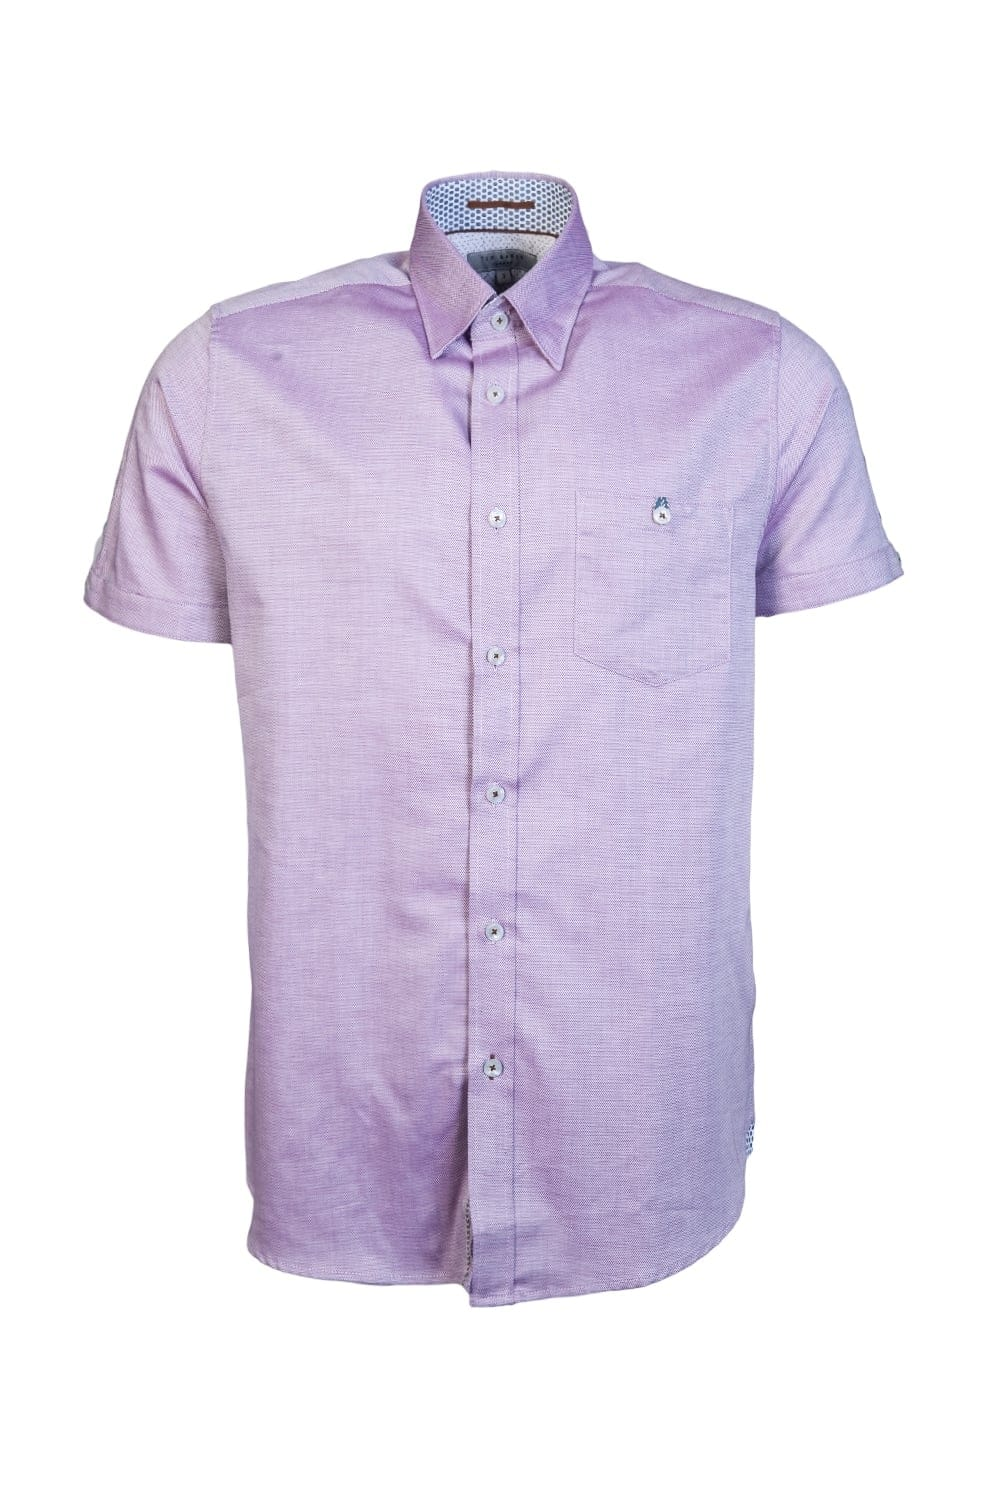 1e7c357269f0d Ted Baker Short Sleeve Shirt TS7M GA19 WOOEY-65 - Clothing from Sage ...